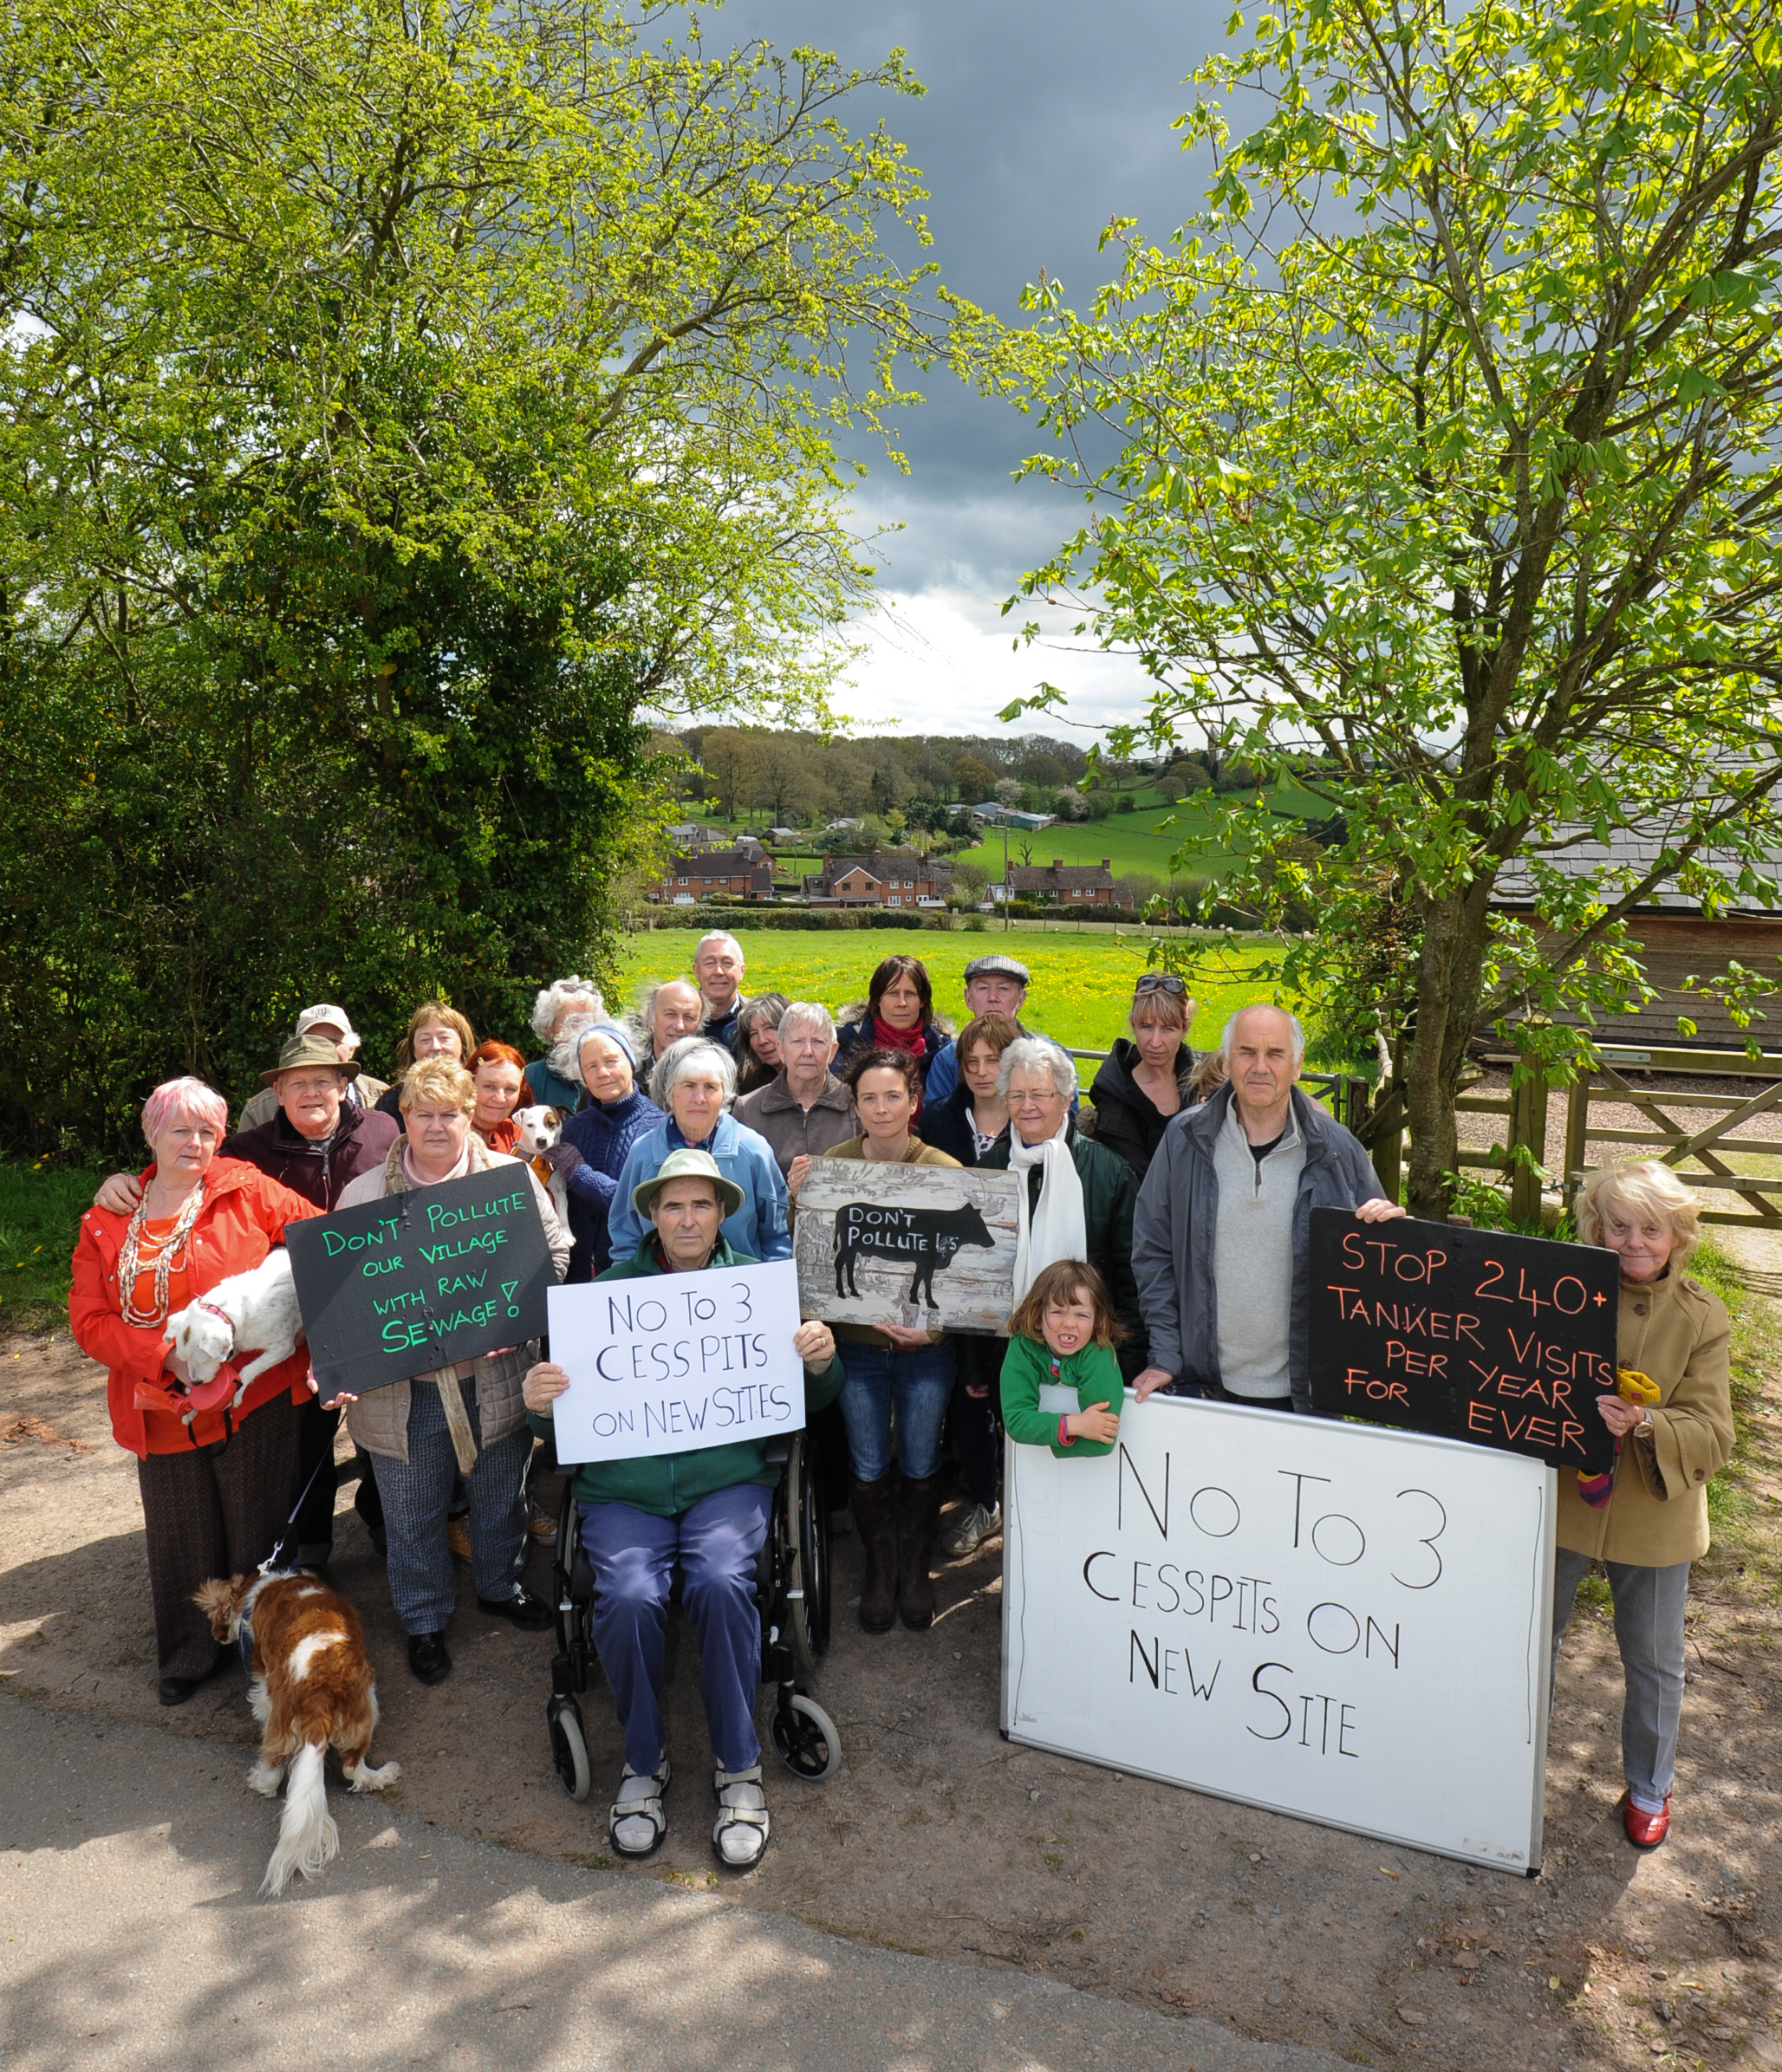 Orcop Hill residents are opposed to plans for three houses to be built in the hamlet, each with its own cesspitt..